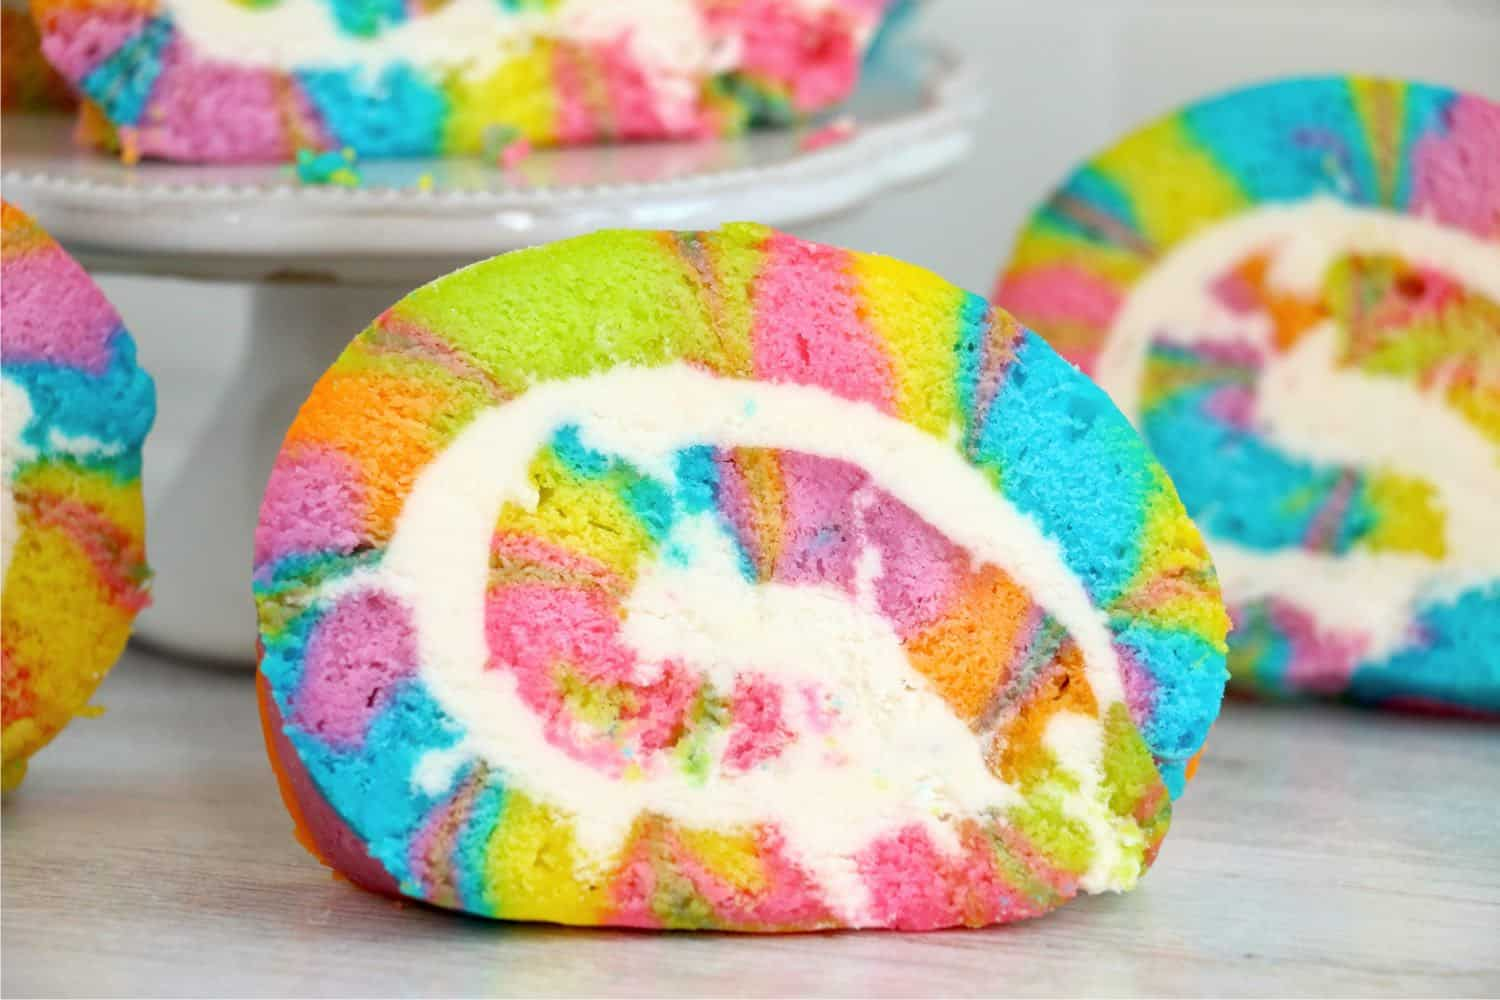 This Tie Dye Vanilla Cake Roll is a sweet, rich, and decadent roll cake filled with homemade buttercream frosting. Perfect for parties!